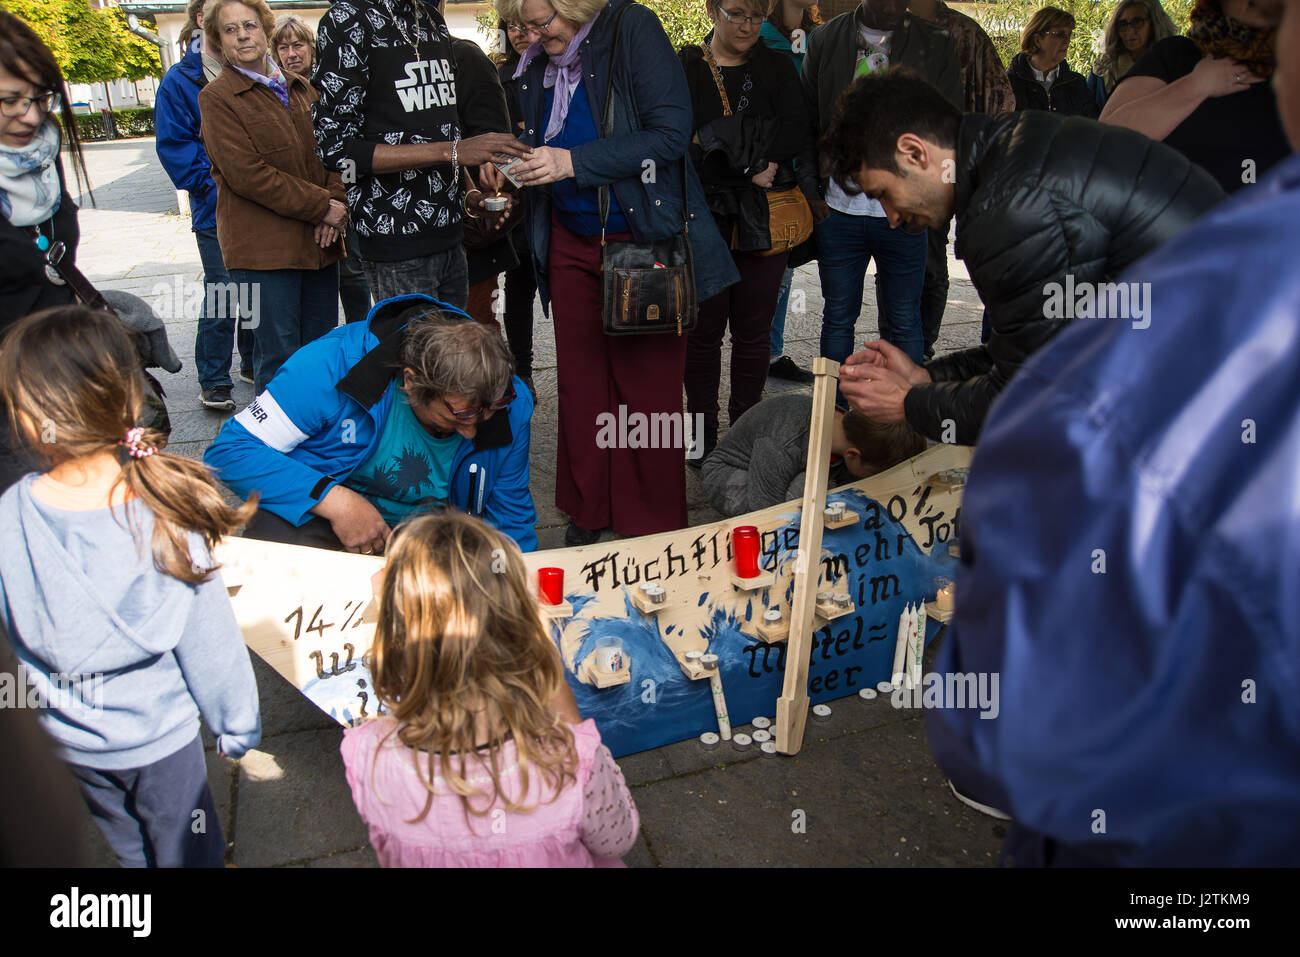 Altoetting, Germany-May 1, 2017: People protesting against the European Union's refugee policy light candles - Stock Image